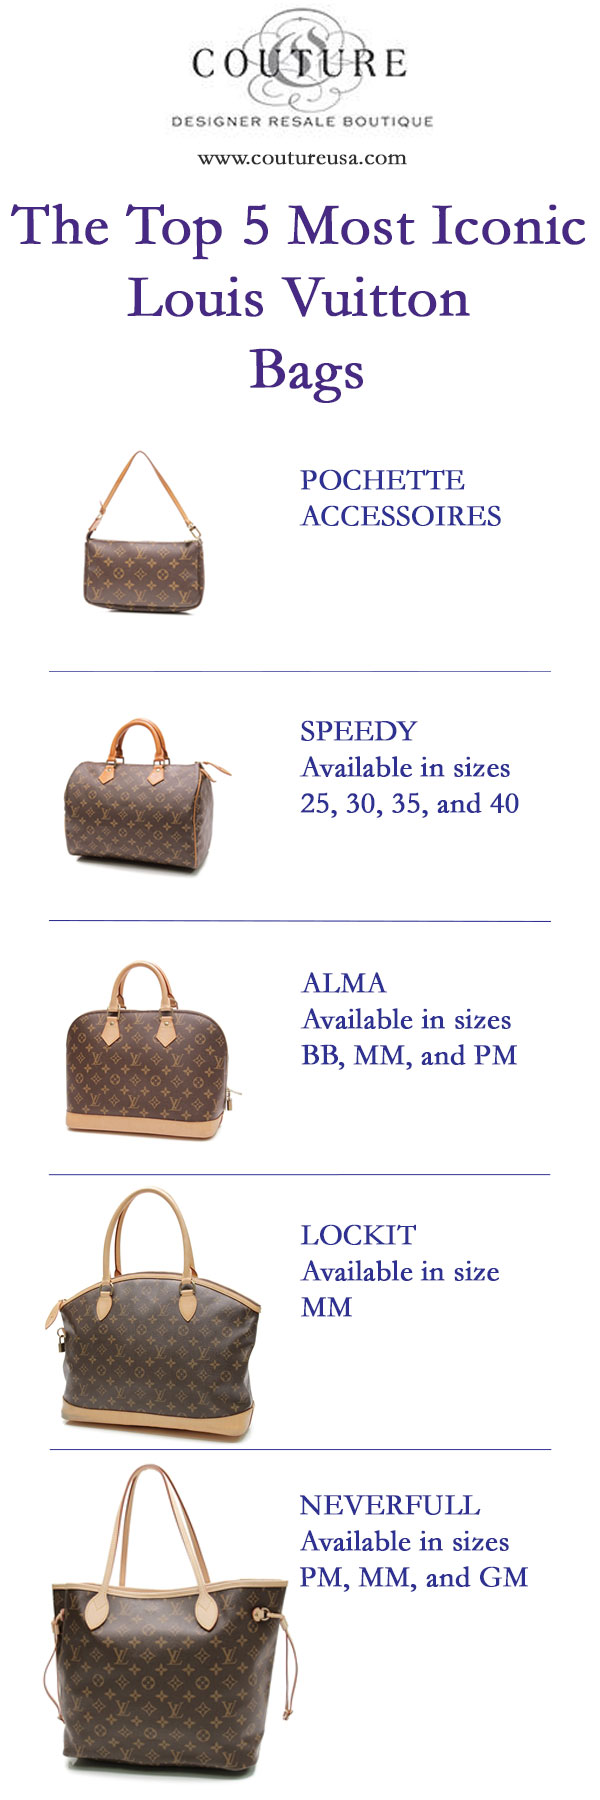 How To Identify Authentic Louis Vuitton Bags Couture Usa >> Check Out Our Top 5 Lv Bag Guide Louisvuitton Speedy